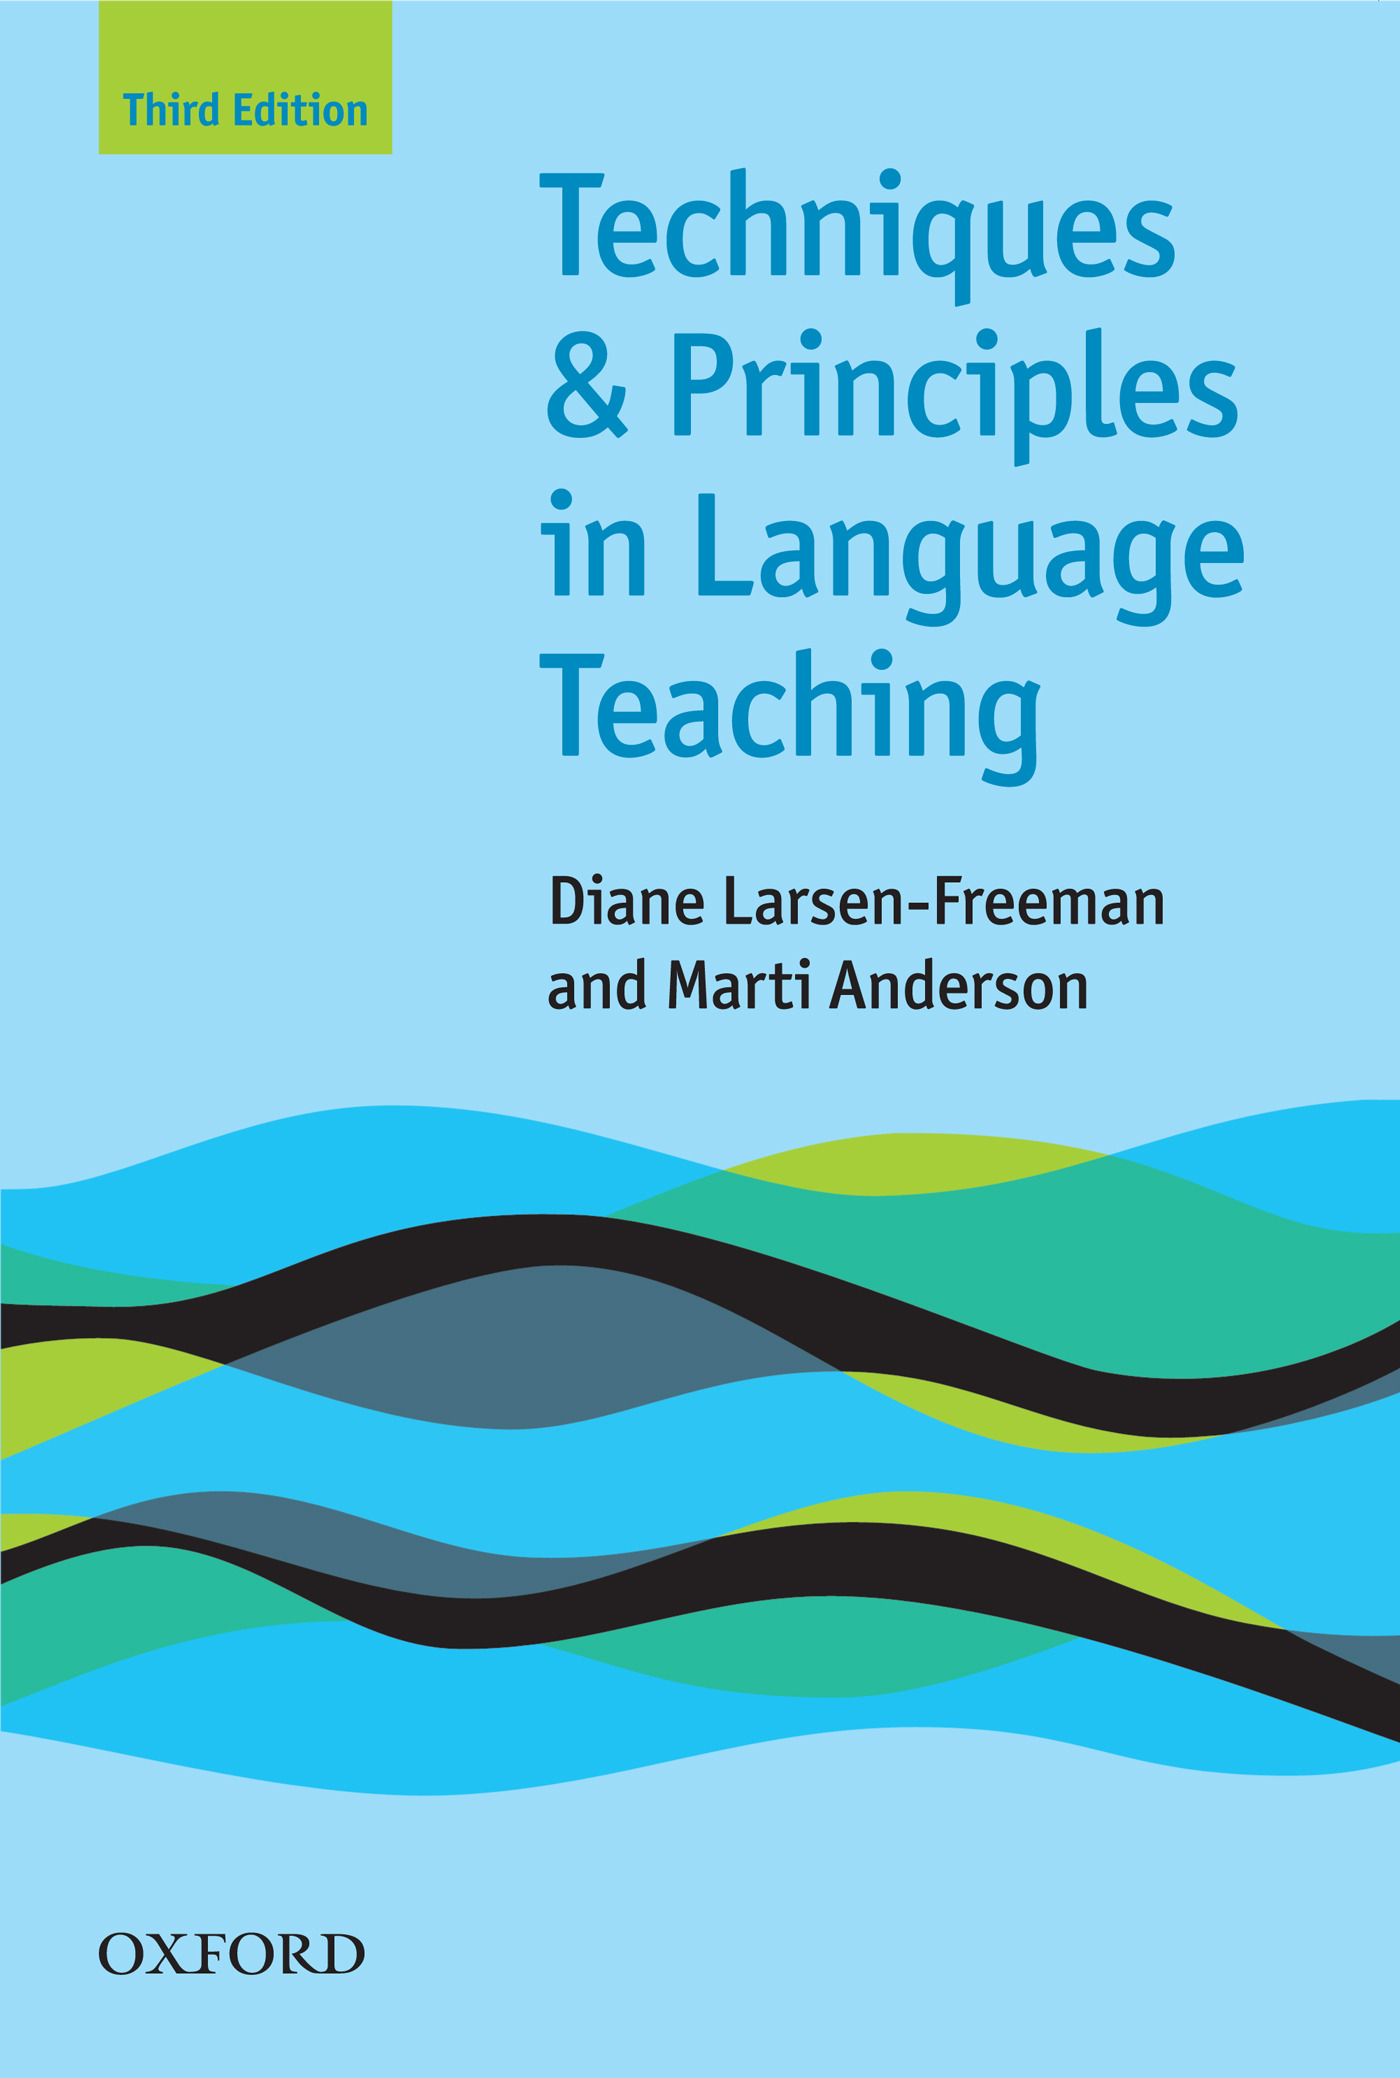 Marti Anderson Techniques and Principles in Language Teaching 3rd edition цена